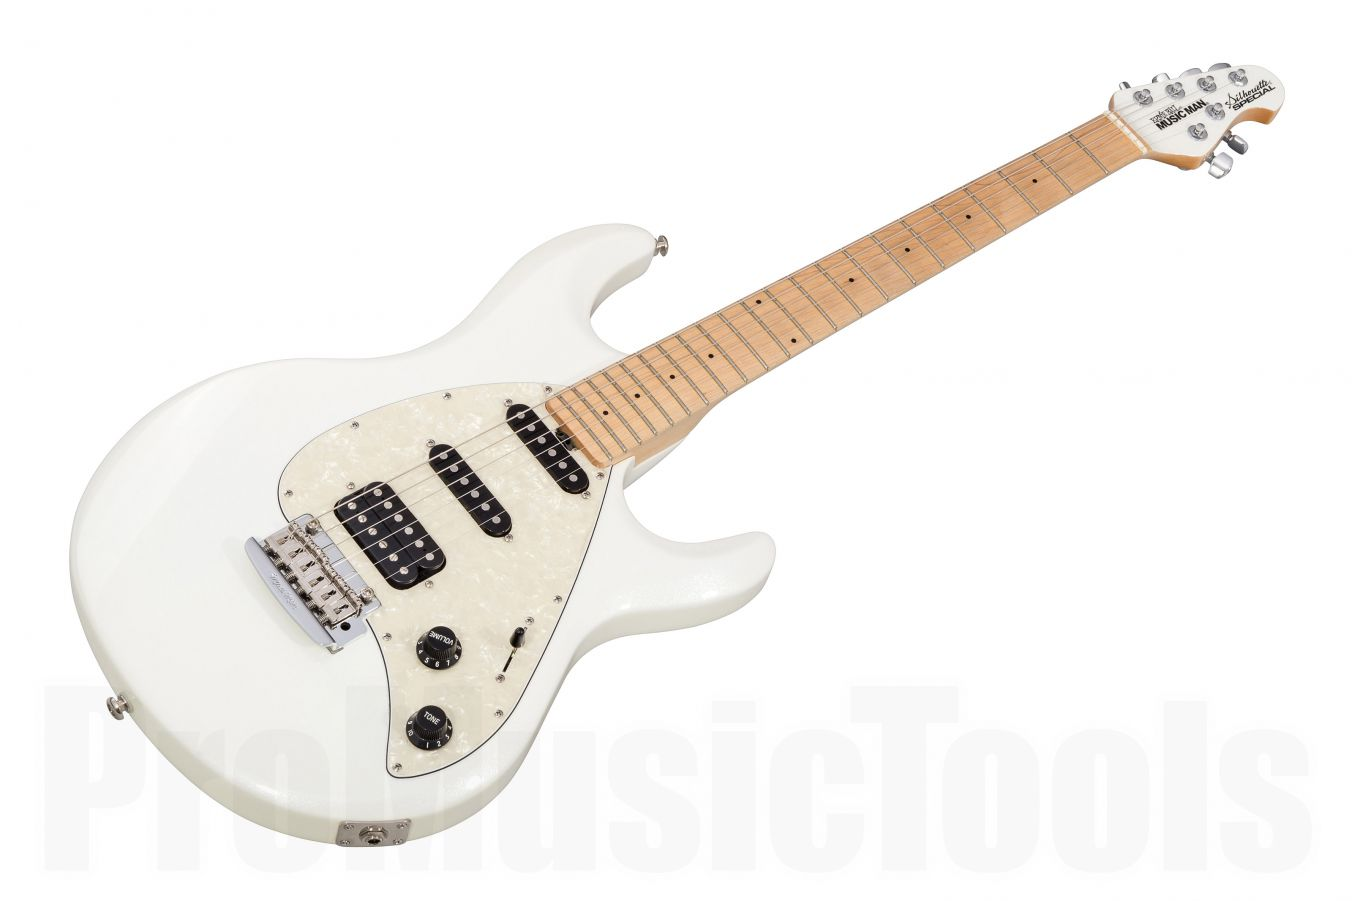 Music Man USA Silhouette Special HSS Trem WP - White Pearl MN MH